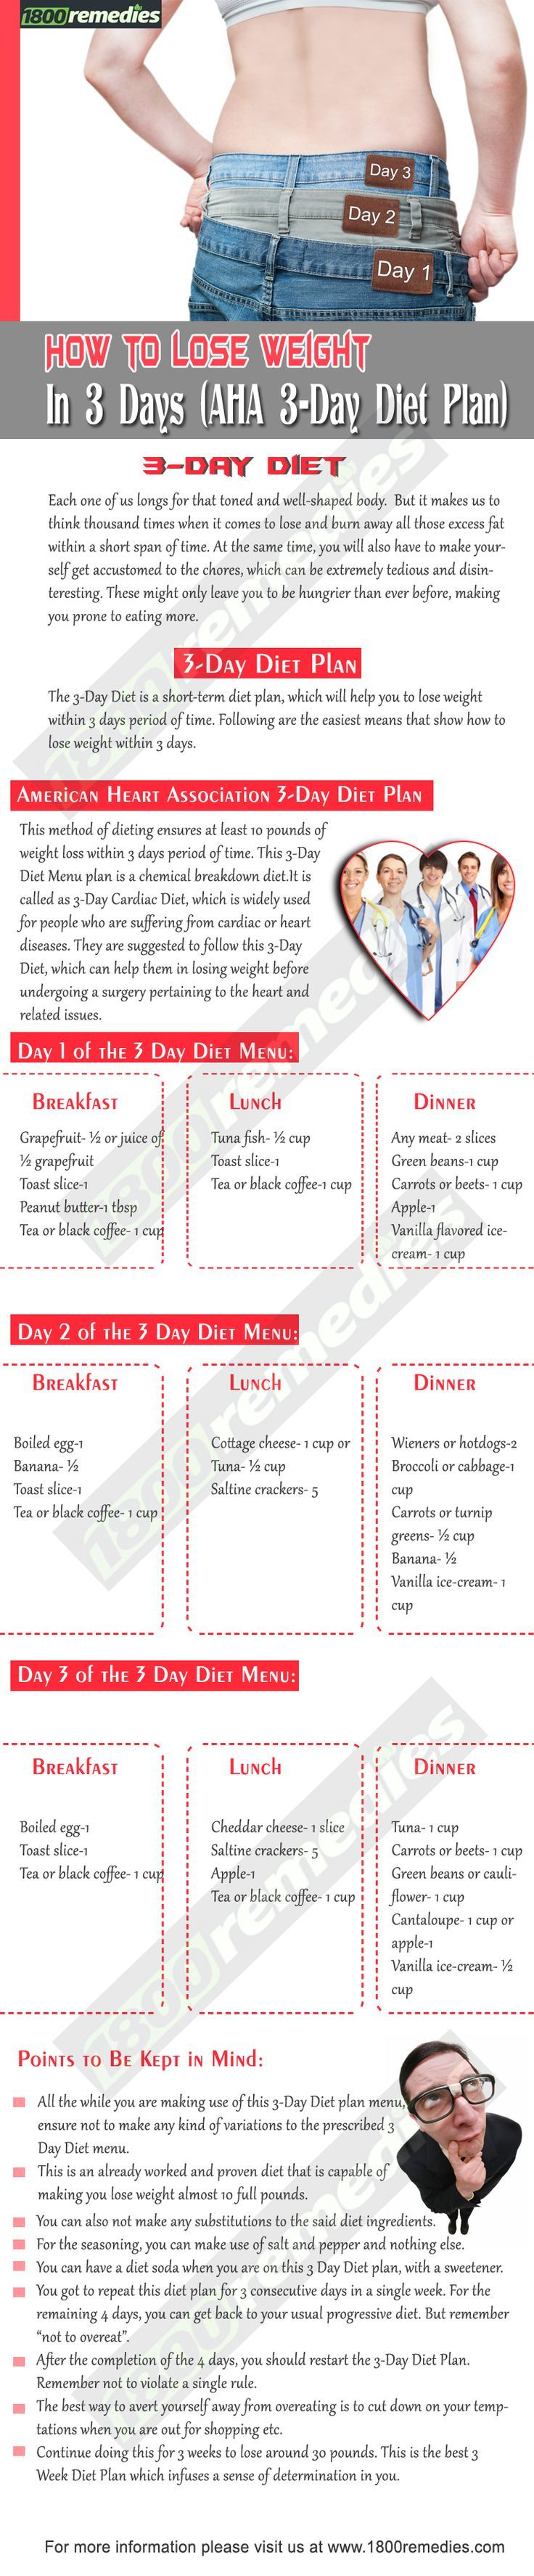 weight loss foods, workout for fat loss, how to lose all belly fat - The 3-Day Diet is a short-term diet plan, which will help you to lose weight within 3 days period of time. Following are the easiest means that show how to lose weight within 3 days.